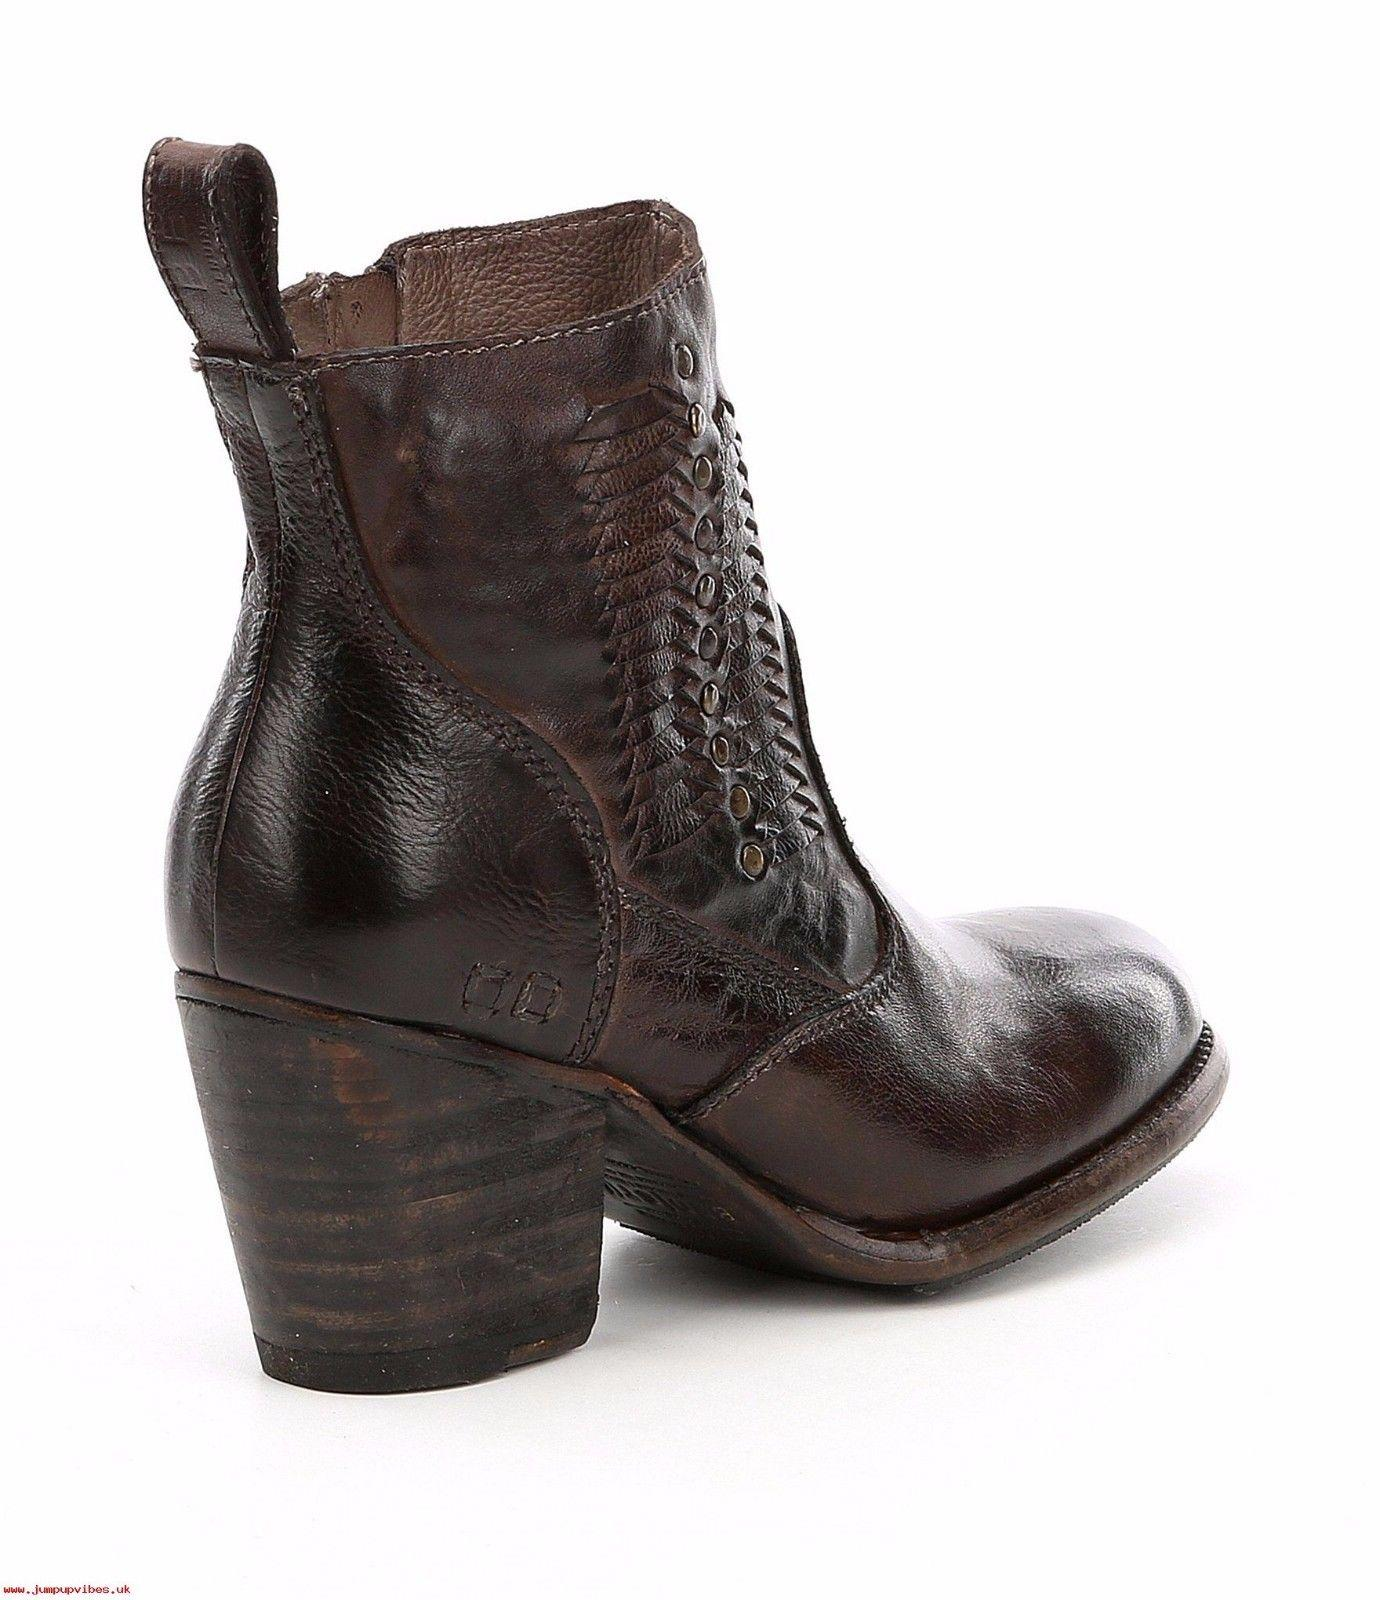 Bed Stu Ankle Brown Woven Rustic Leather Shrill Boots Zippered Moto Booties 9 - Click Image to Close